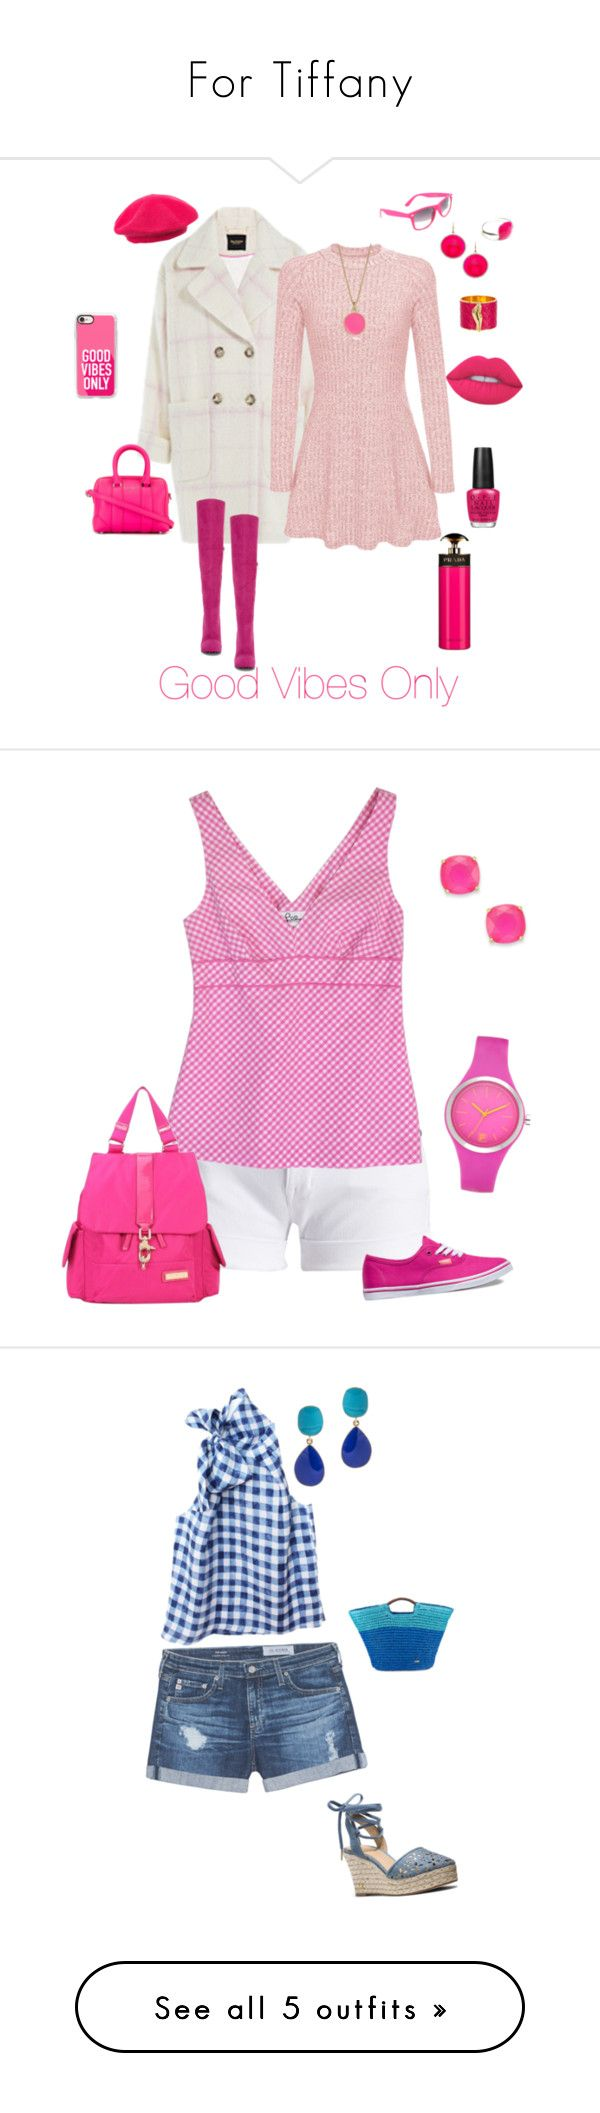 """""""For Tiffany"""" by michelechambers ❤ liked on Polyvore featuring Juicy Couture, Kate Spade, Madison Precious Jewels, Diane Von Furstenberg, Les Rêveries d'Eve, Givenchy, Two Lips, SWG, Ashley Stewart and Casetify"""